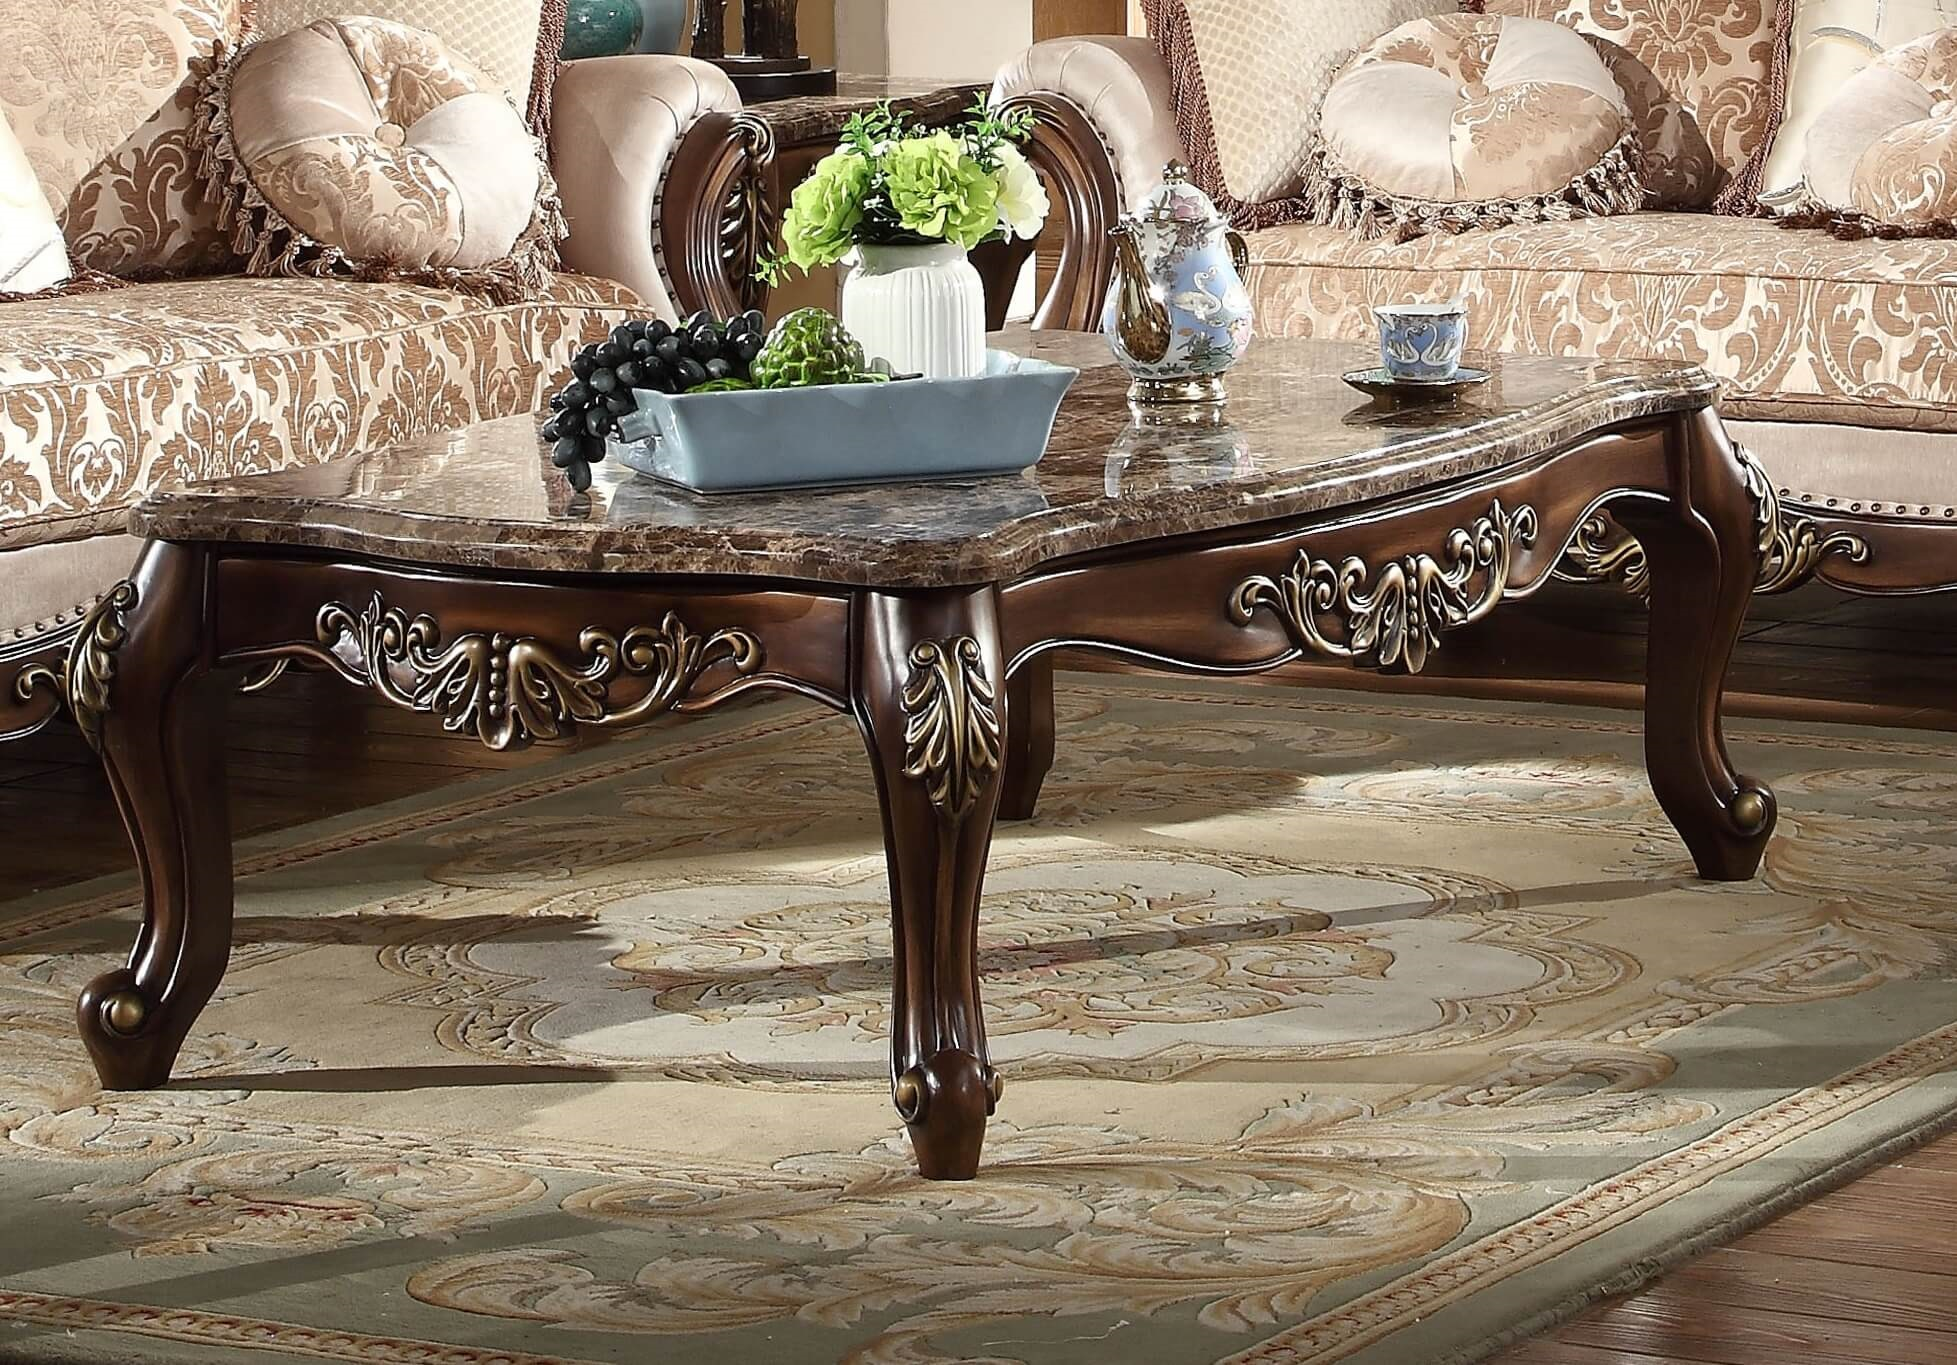 Renaissance Coffee Table With Genuine Marble Top Mcferran SF - Genuine marble coffee table